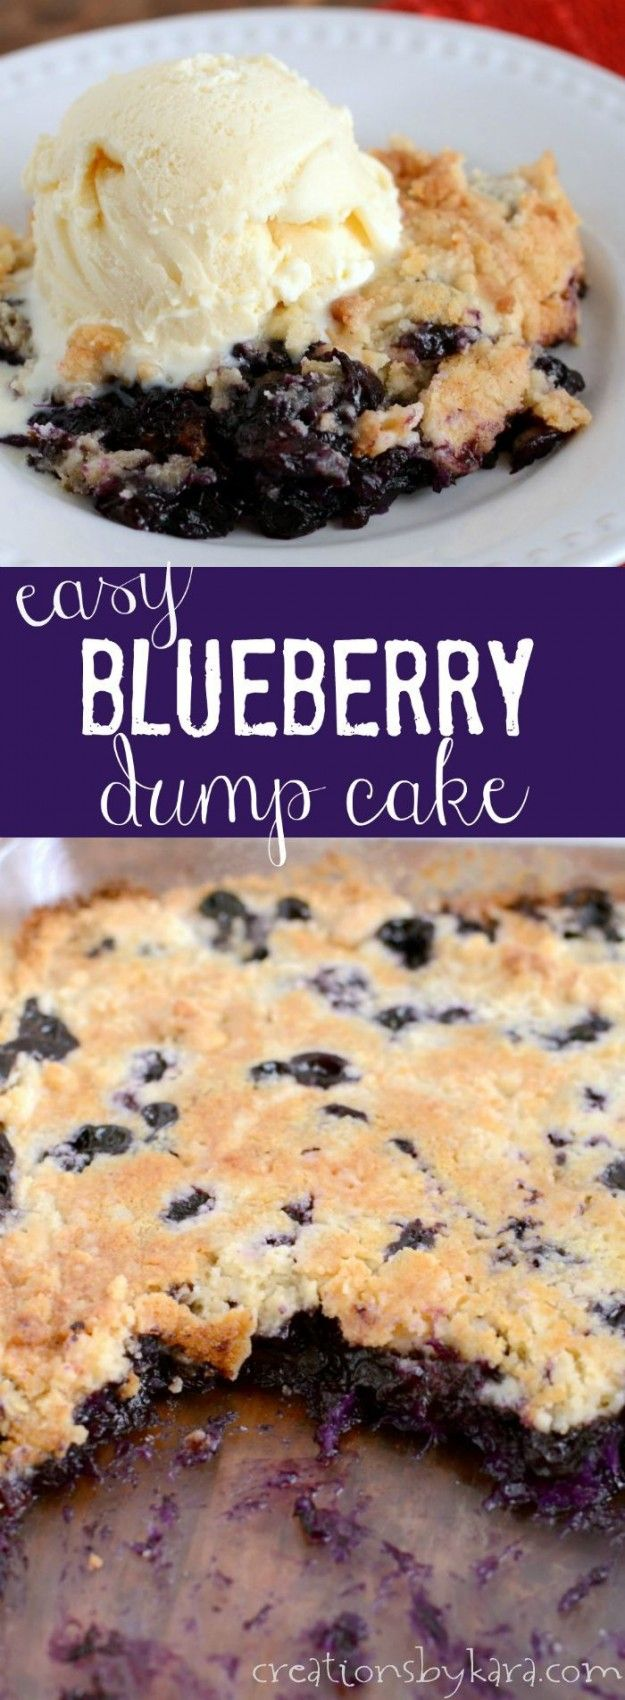 Easiest Blueberry Cobbler ever! This cobbler starts with fresh blueberries, and it is so yummy!